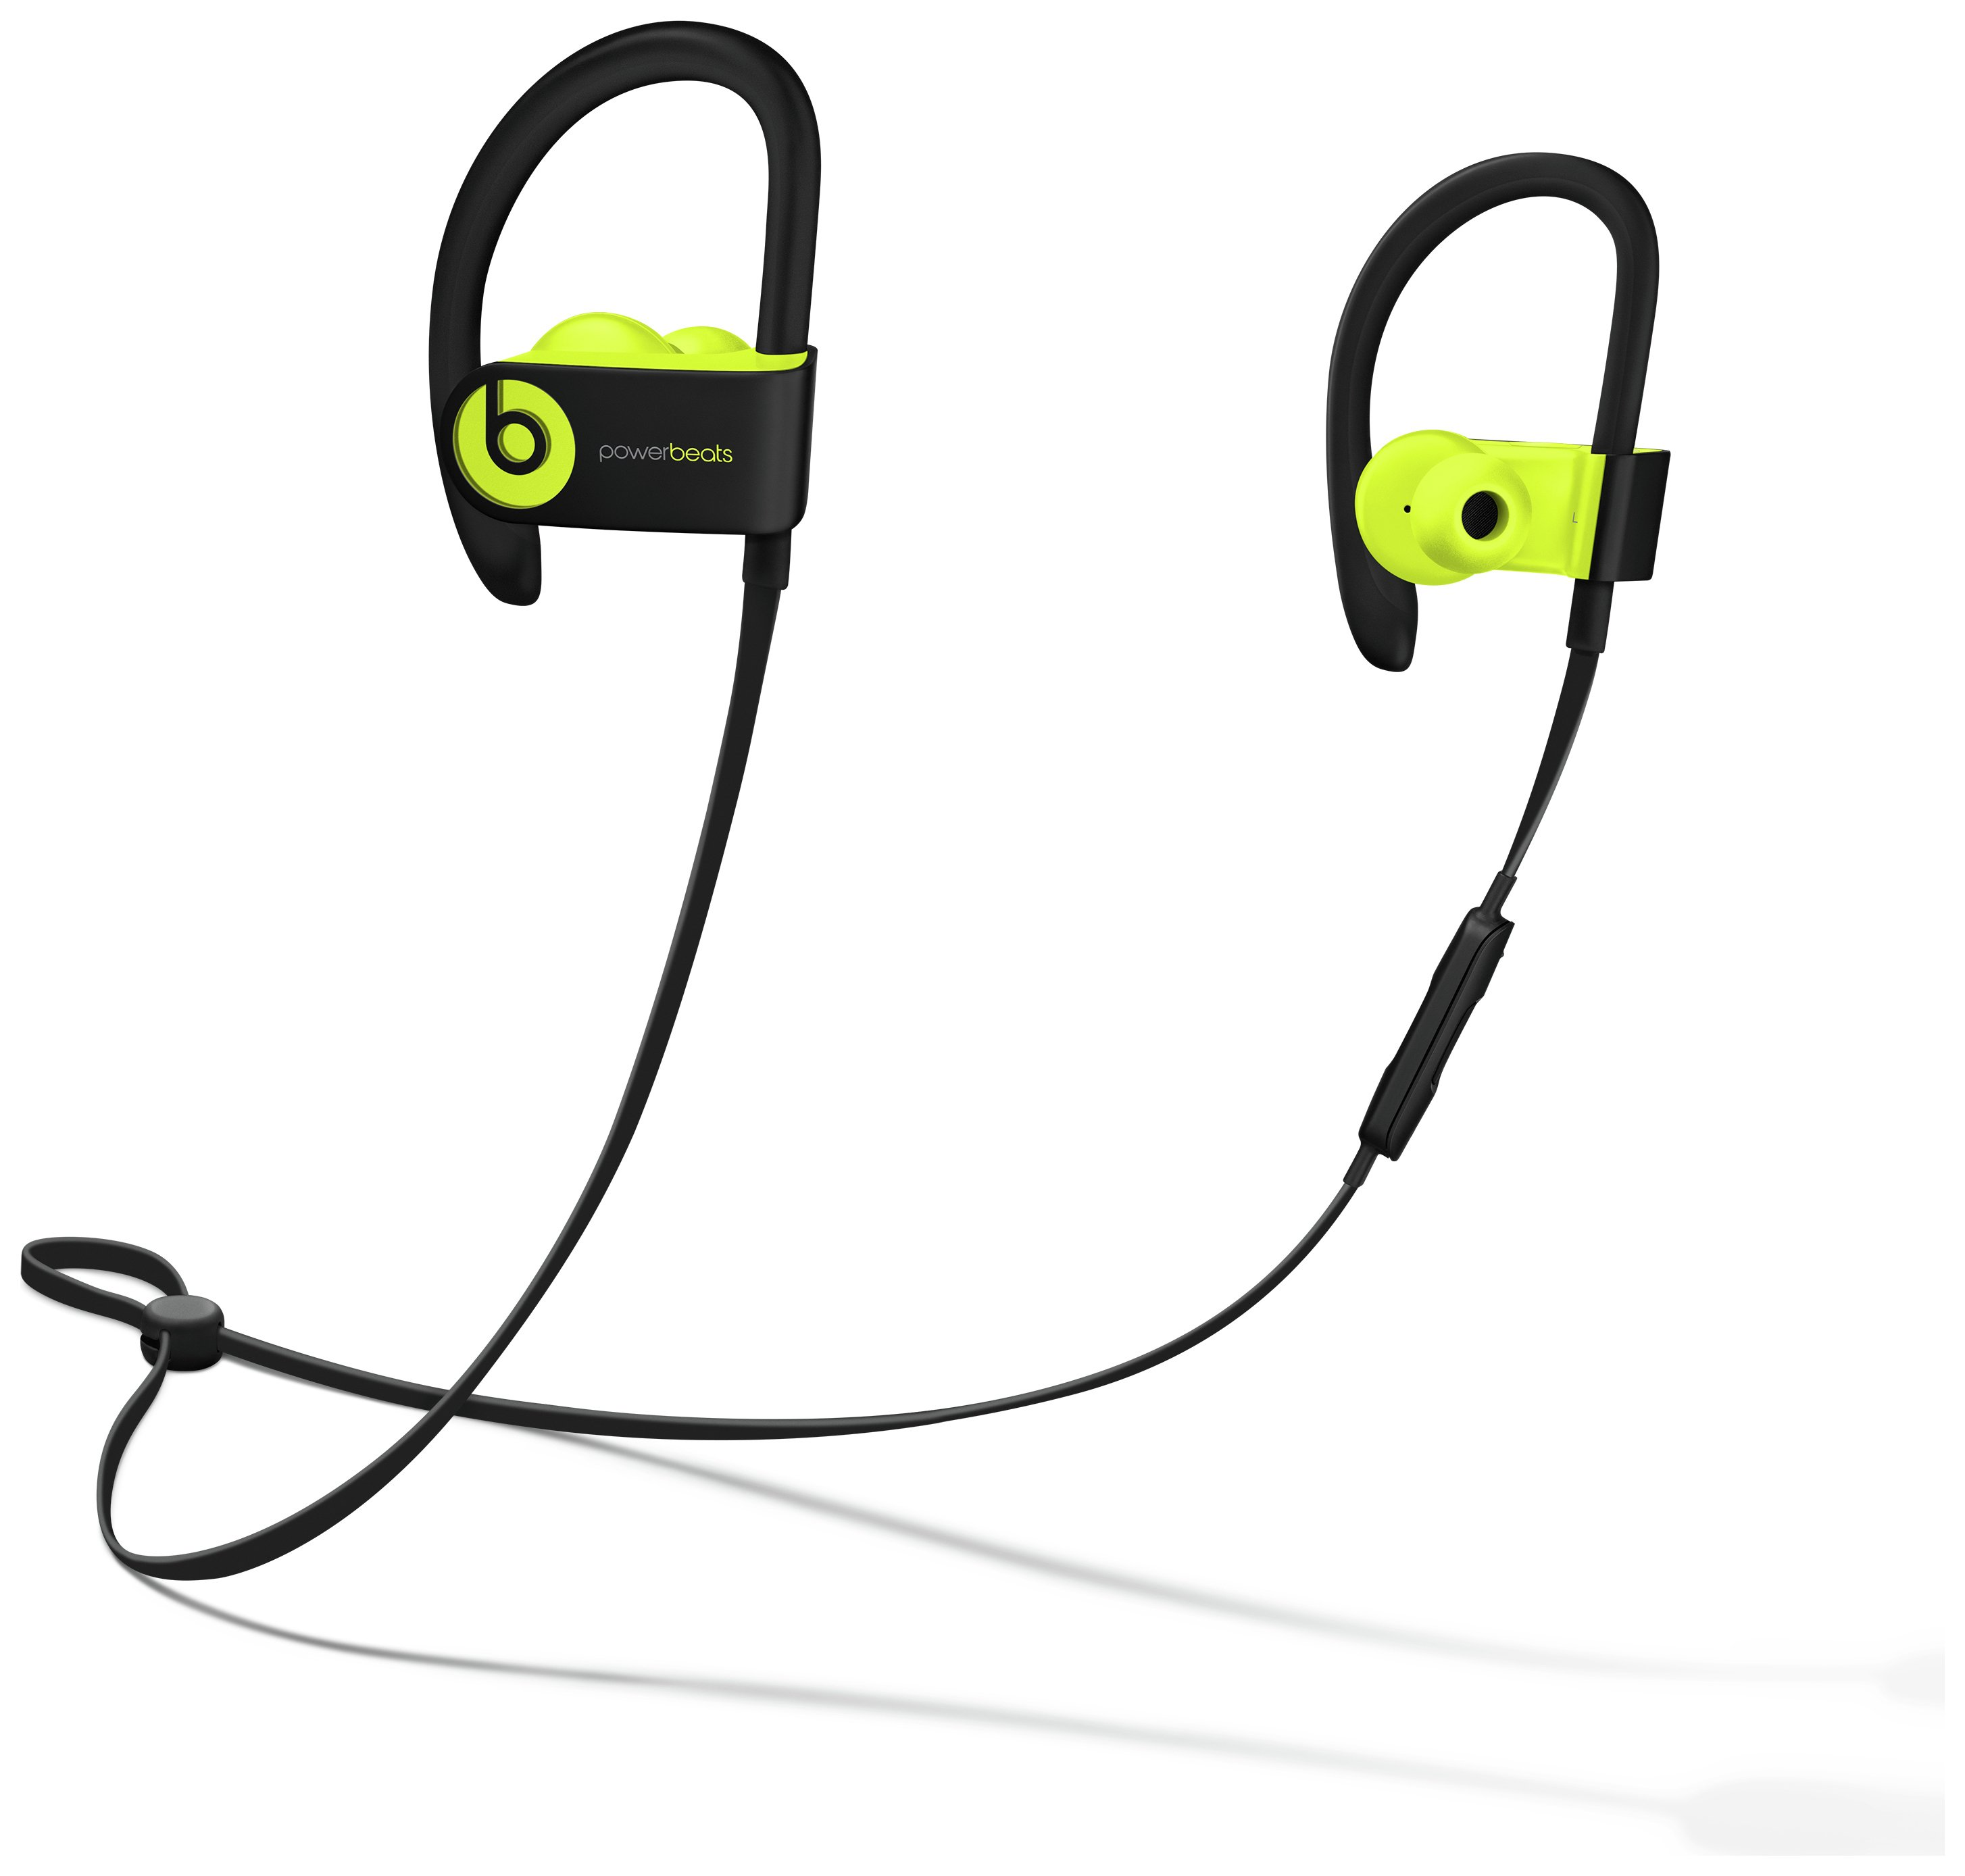 Image of Beats by Dre Powerbeats 3 Wireless Earphones - Shock Yellow